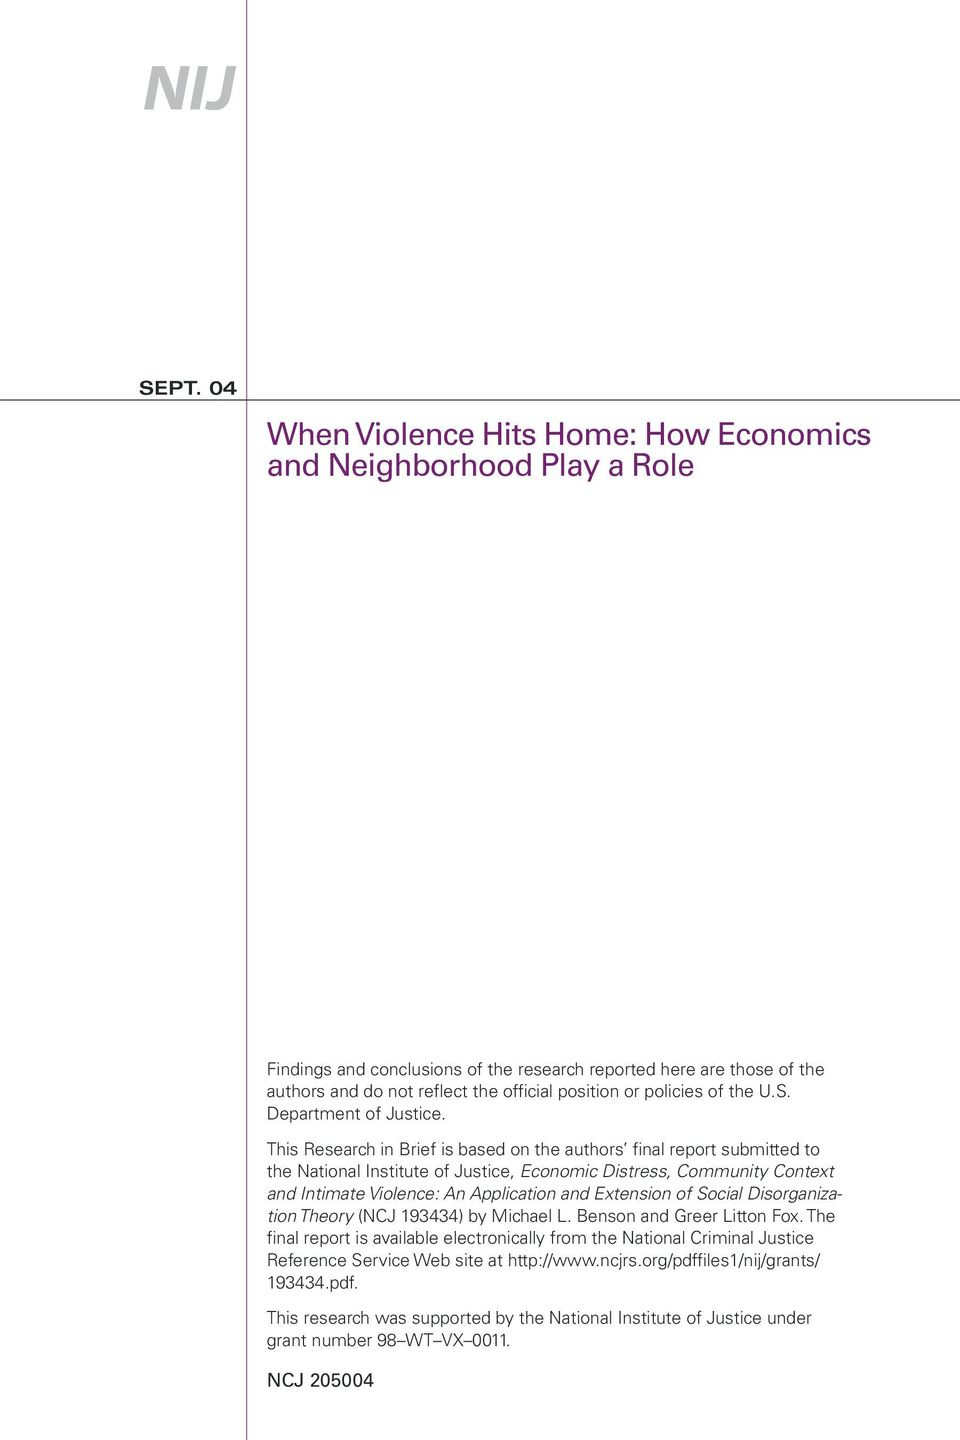 This Research in Brief is based on the authors final report submitted to the National Institute of Justice, Economic Distress, Community Context and Intimate Violence: An Application and Extension of